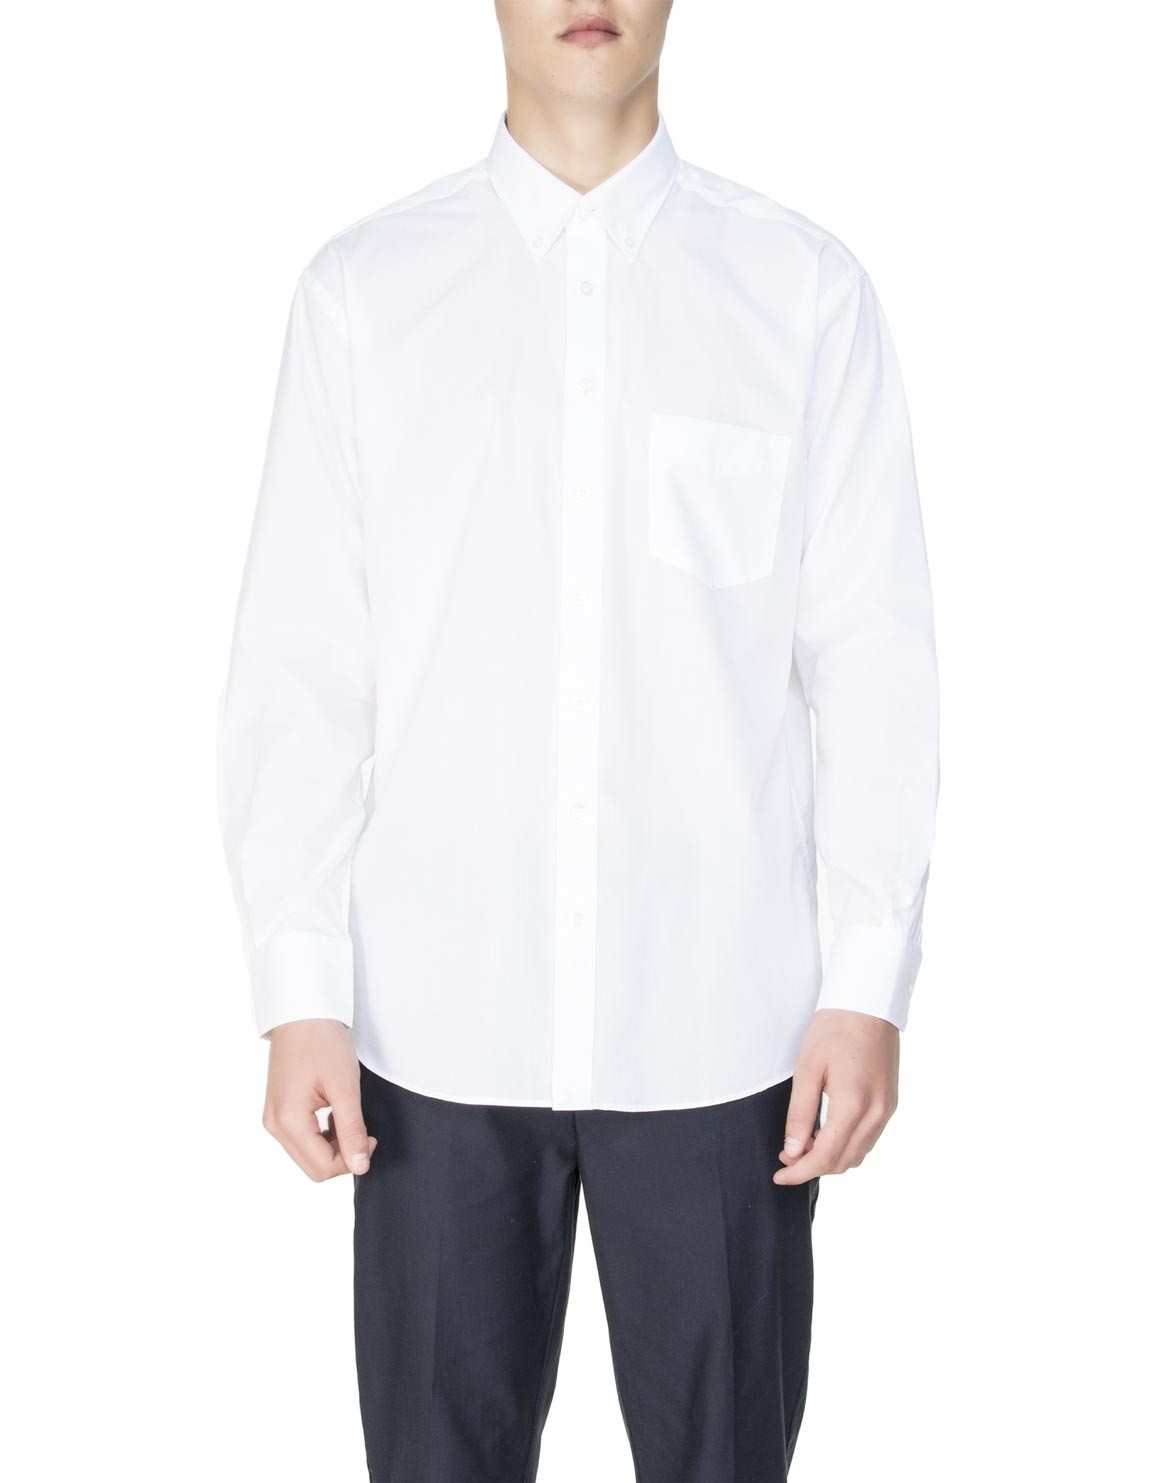 Finding The Perfect White Shirt Woolworths